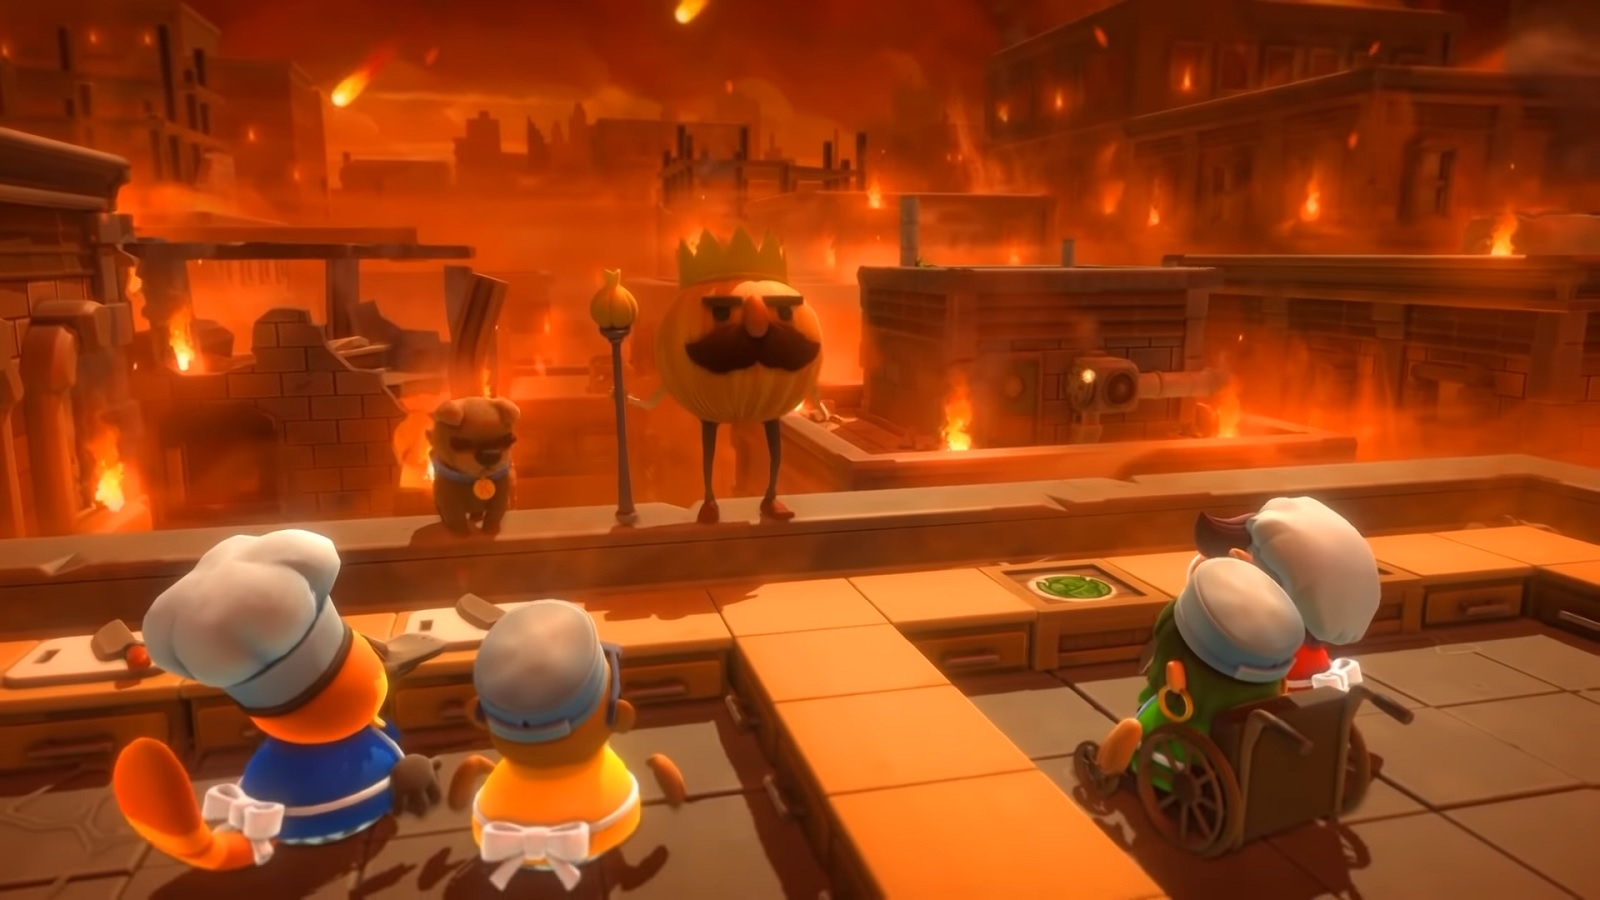 Сборник Overcooked! All You Can Eat к концу марта доберётся до PC, PS4, Xbox One и Switch